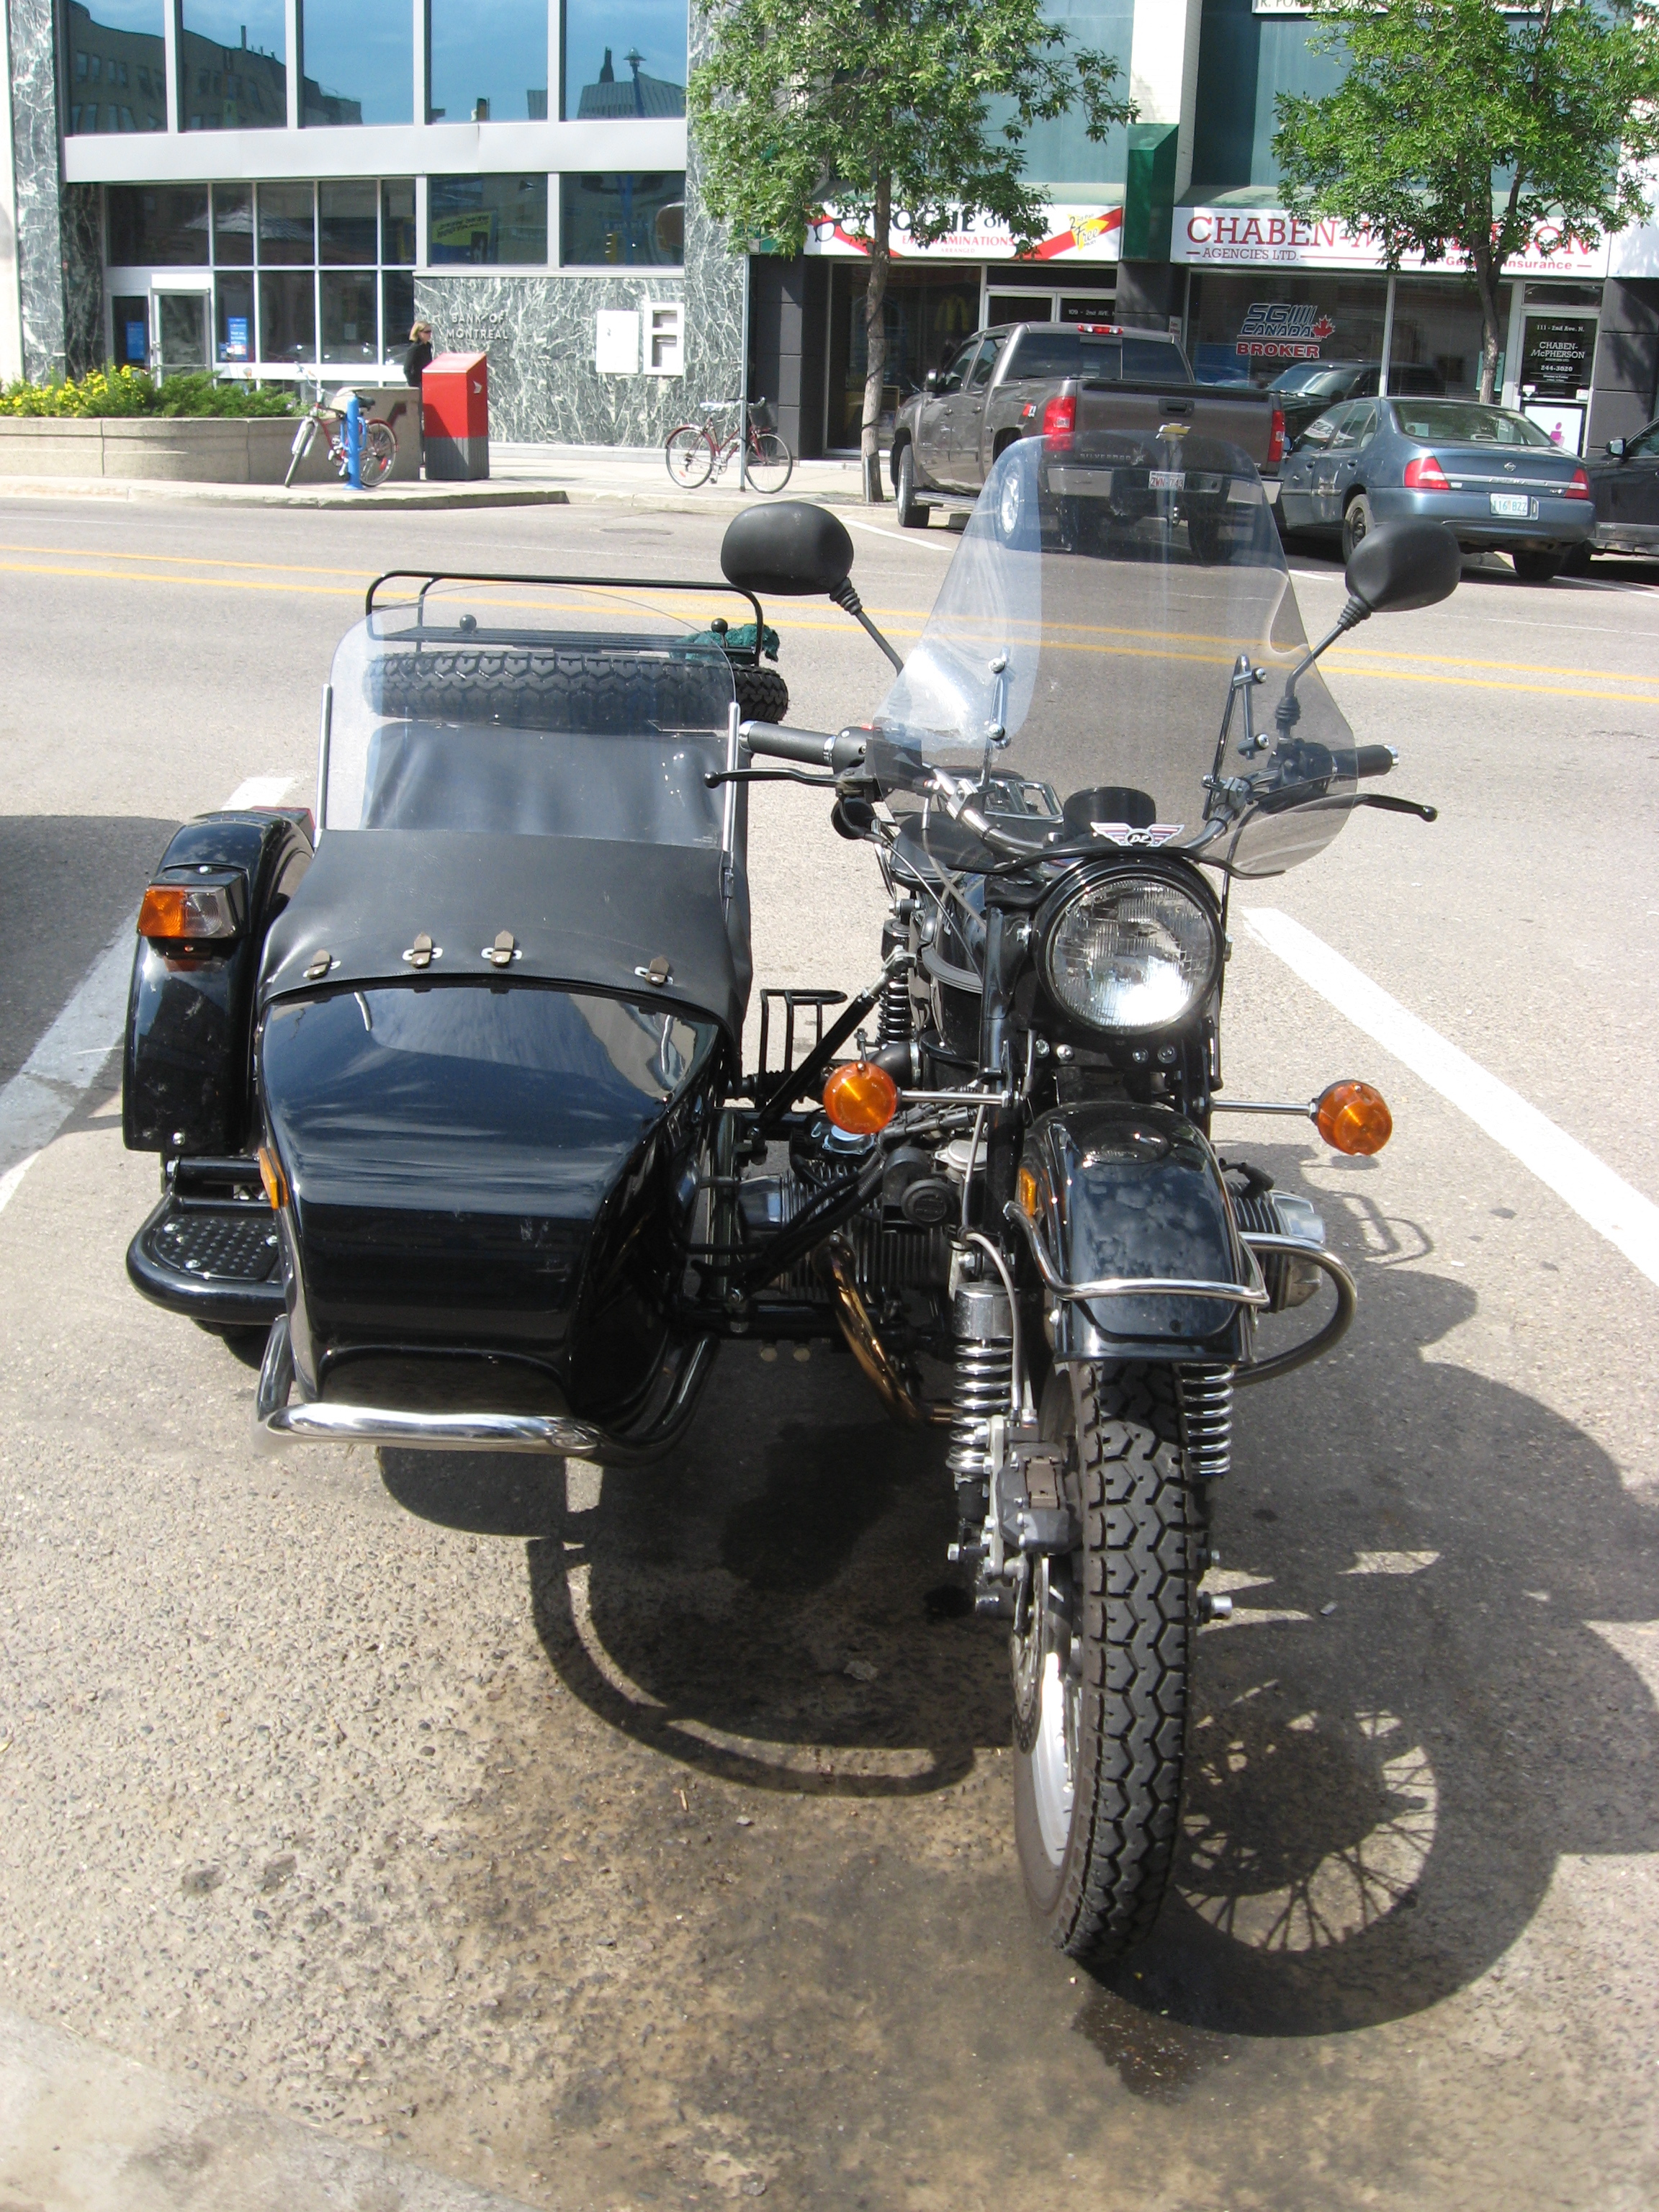 Ural M 66 with sidecar 1975 images #127243